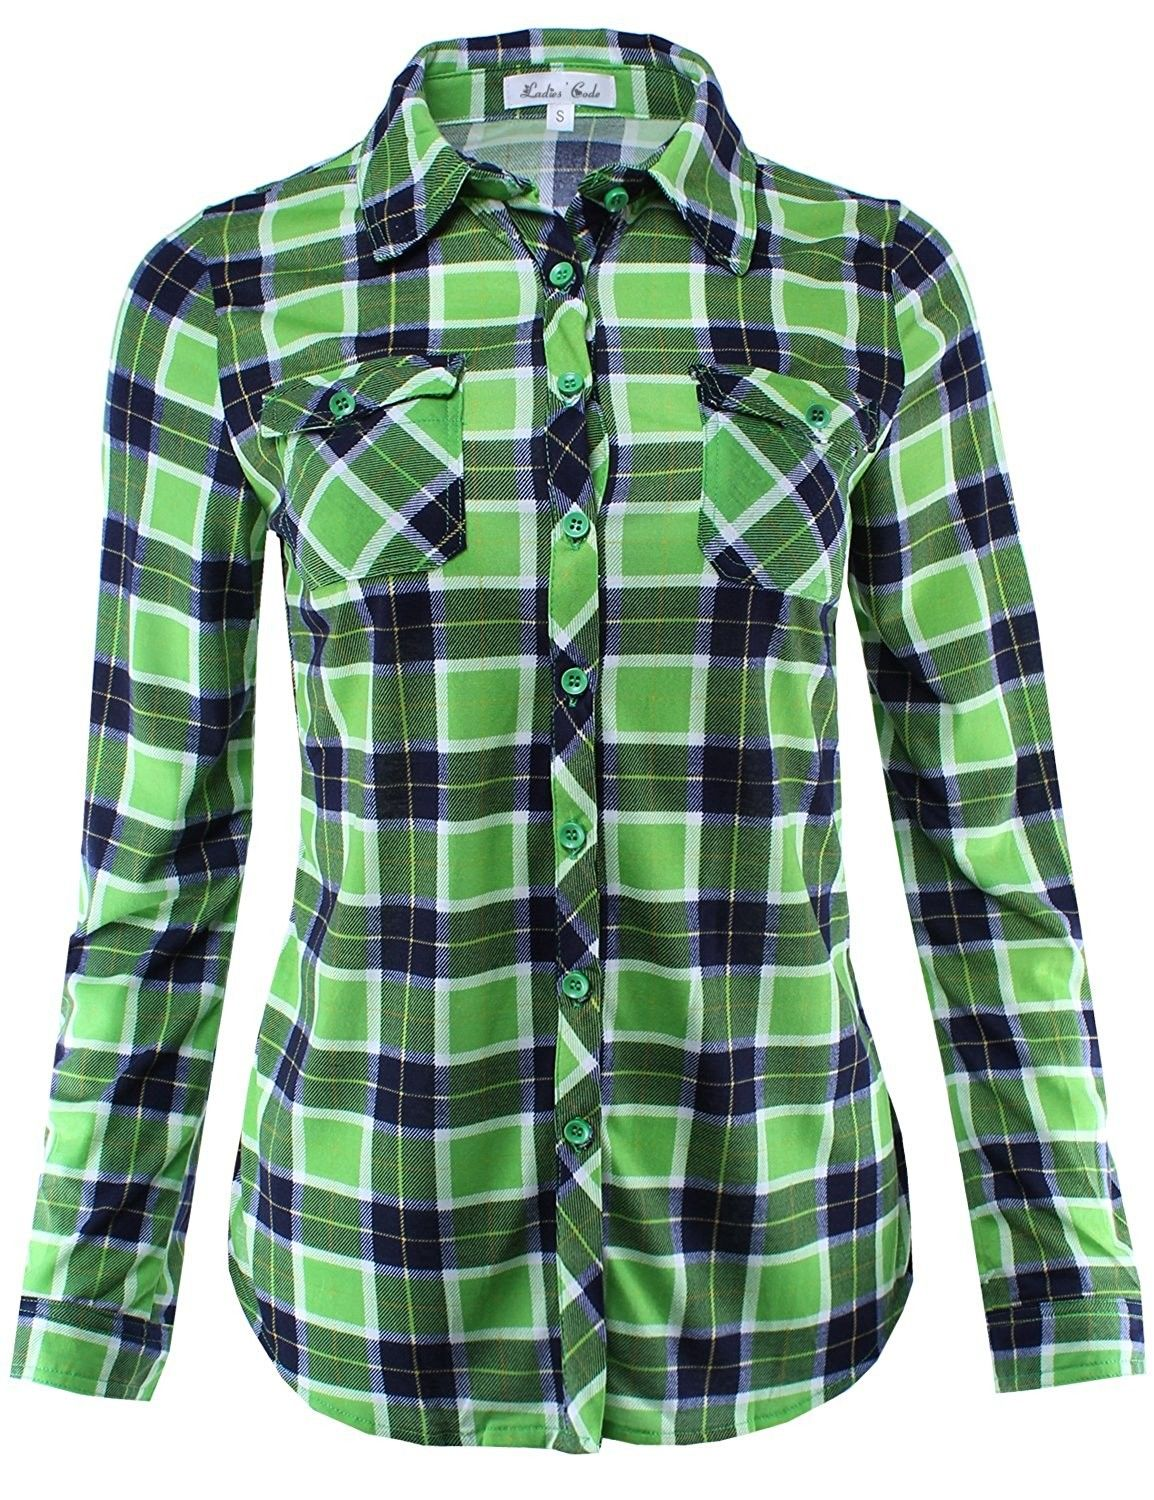 de15c302 Women's Clothing, Tops & Tees, Blouses & Button-Down Shirts, Ladies' Code Women's  Checkered Plaid Button Down Shirt Top With Roll Up Sleeves - Lctl023 Lime  ...